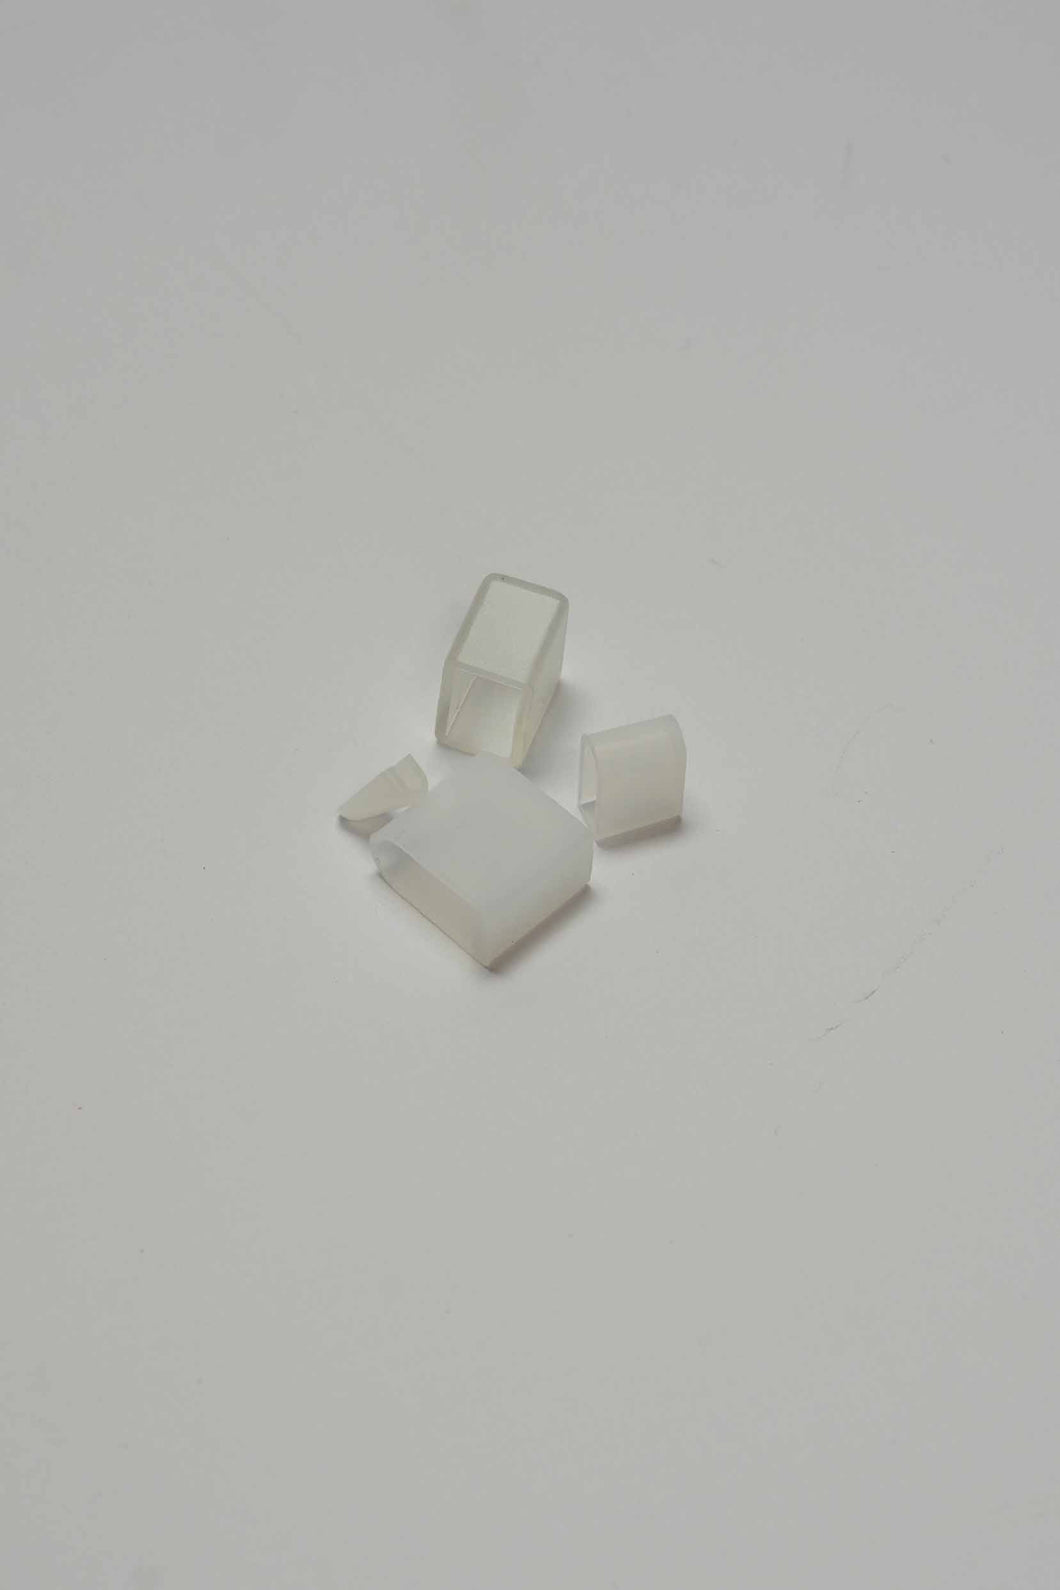 End Caps for 12v Silicone Ultra Mini Pro and Mini Pro